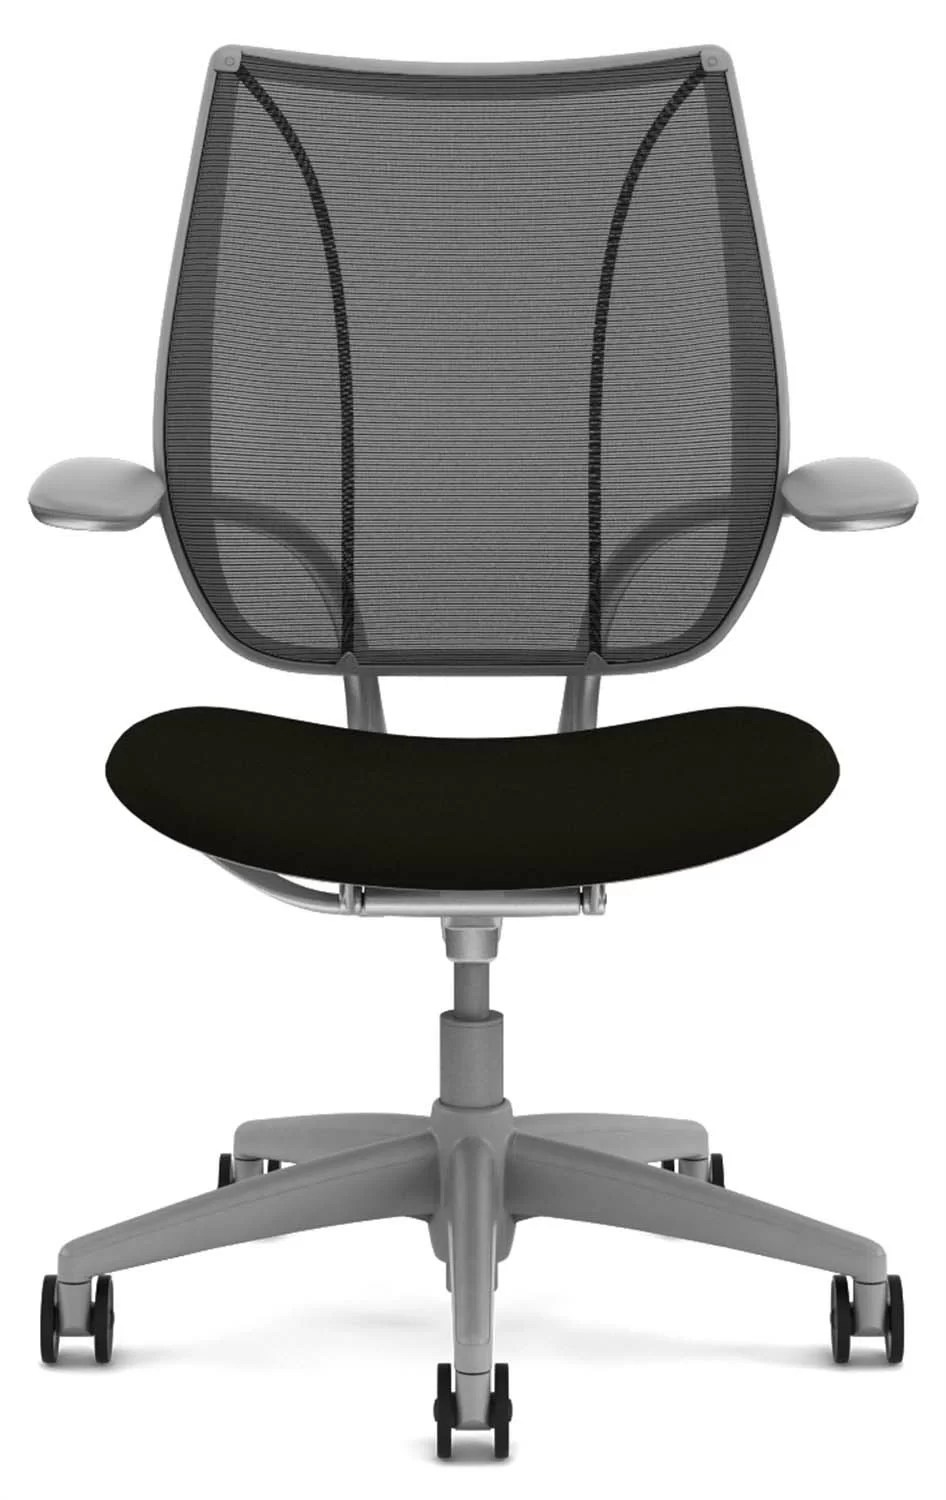 humanscale liberty chair review teak outdoor chairs sydney mesh desk wayfair see more by